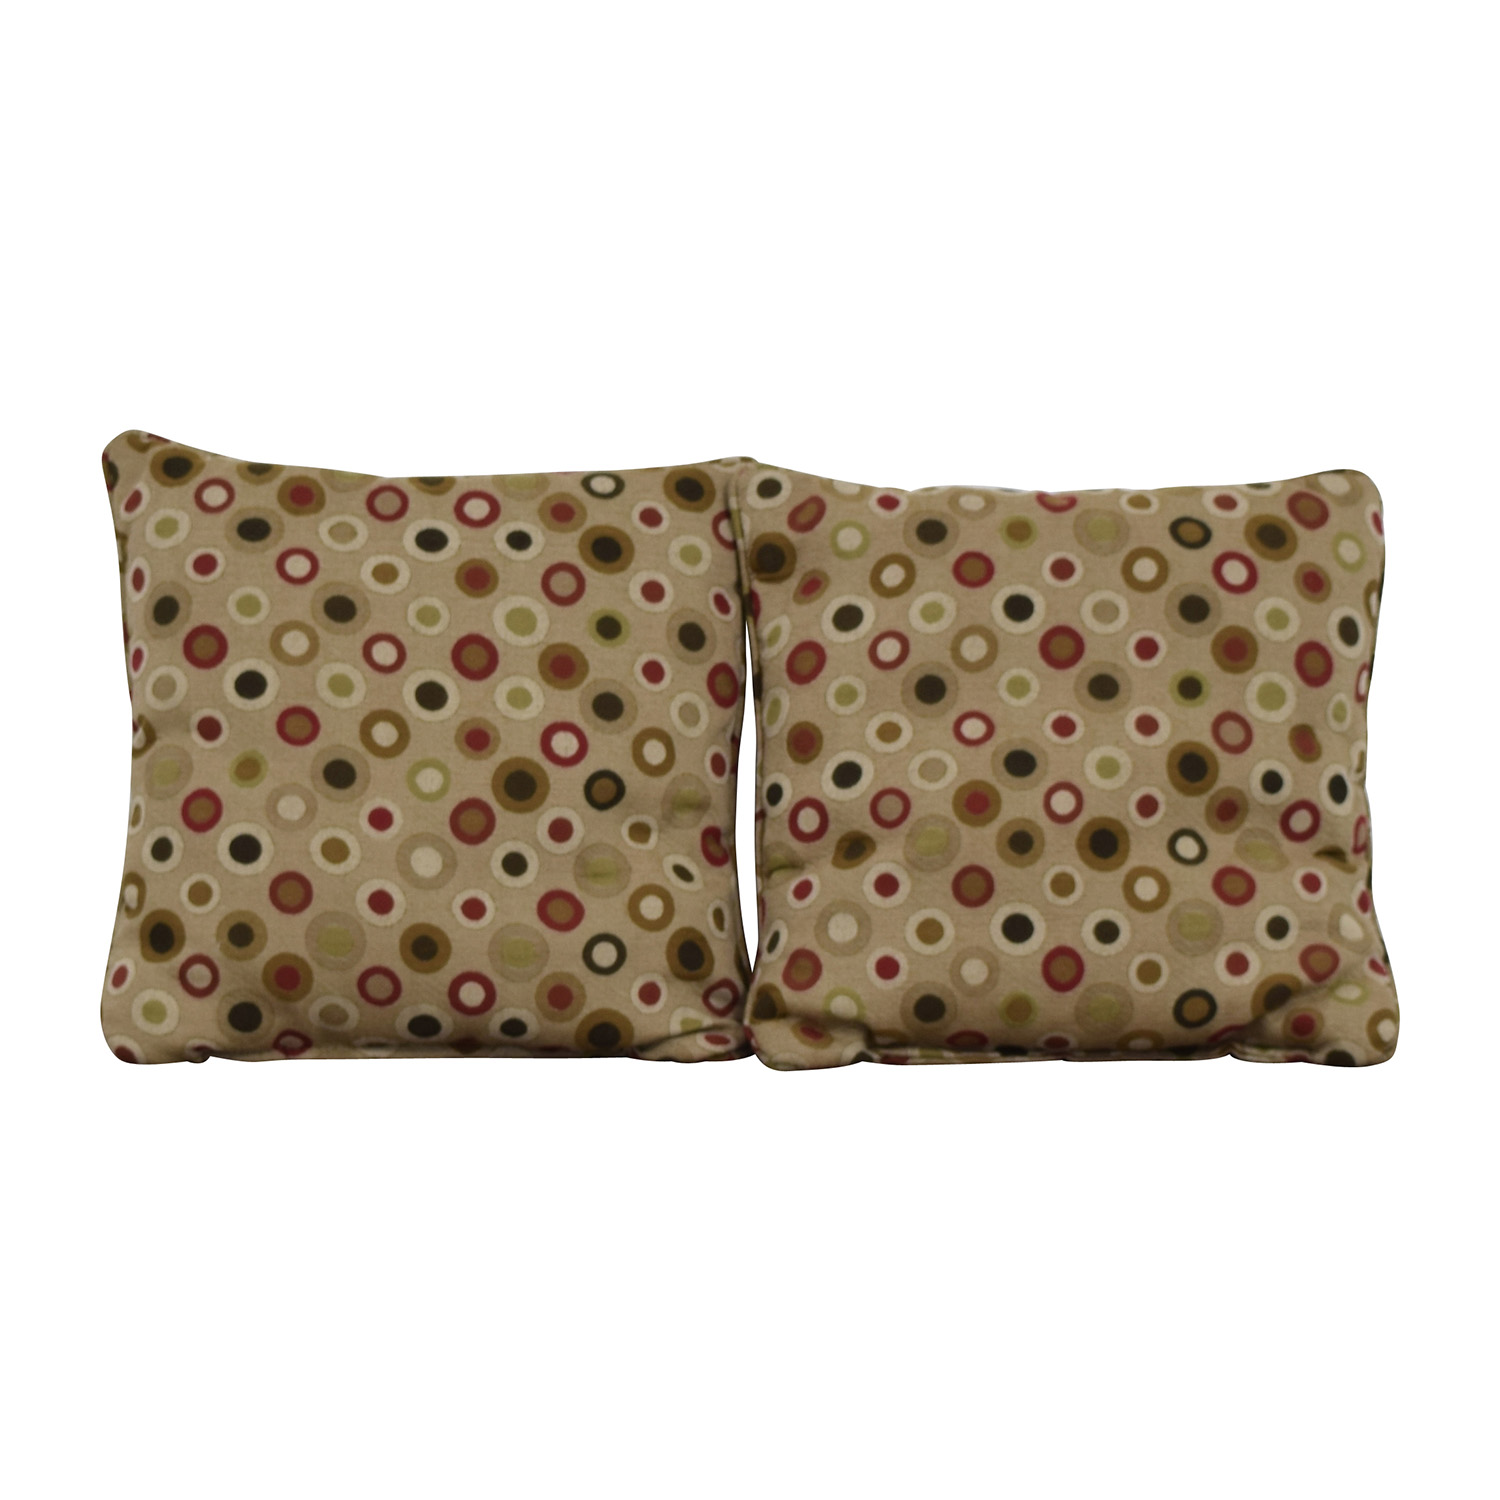 Tan with Multi-Colored Circles Toss Pillows browns/reds/greens/greys